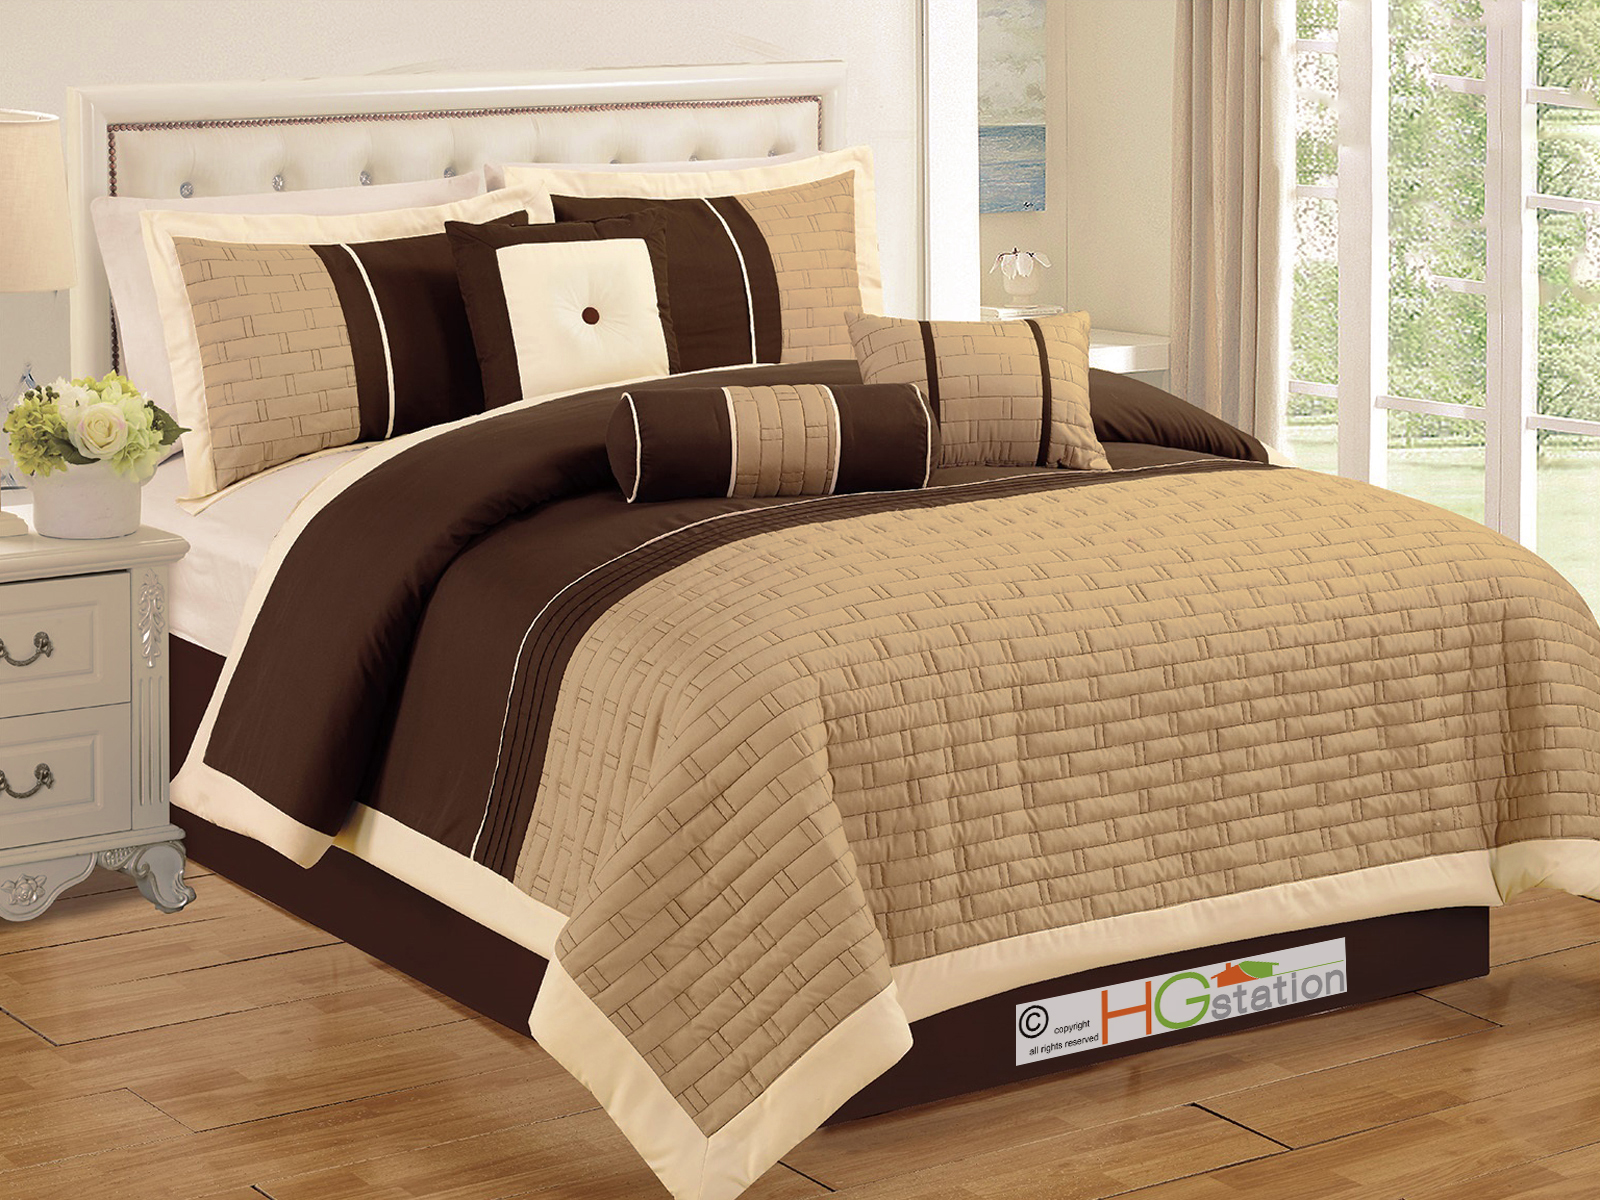 7pc brickyard quilted pleated striped comforter set tan coff